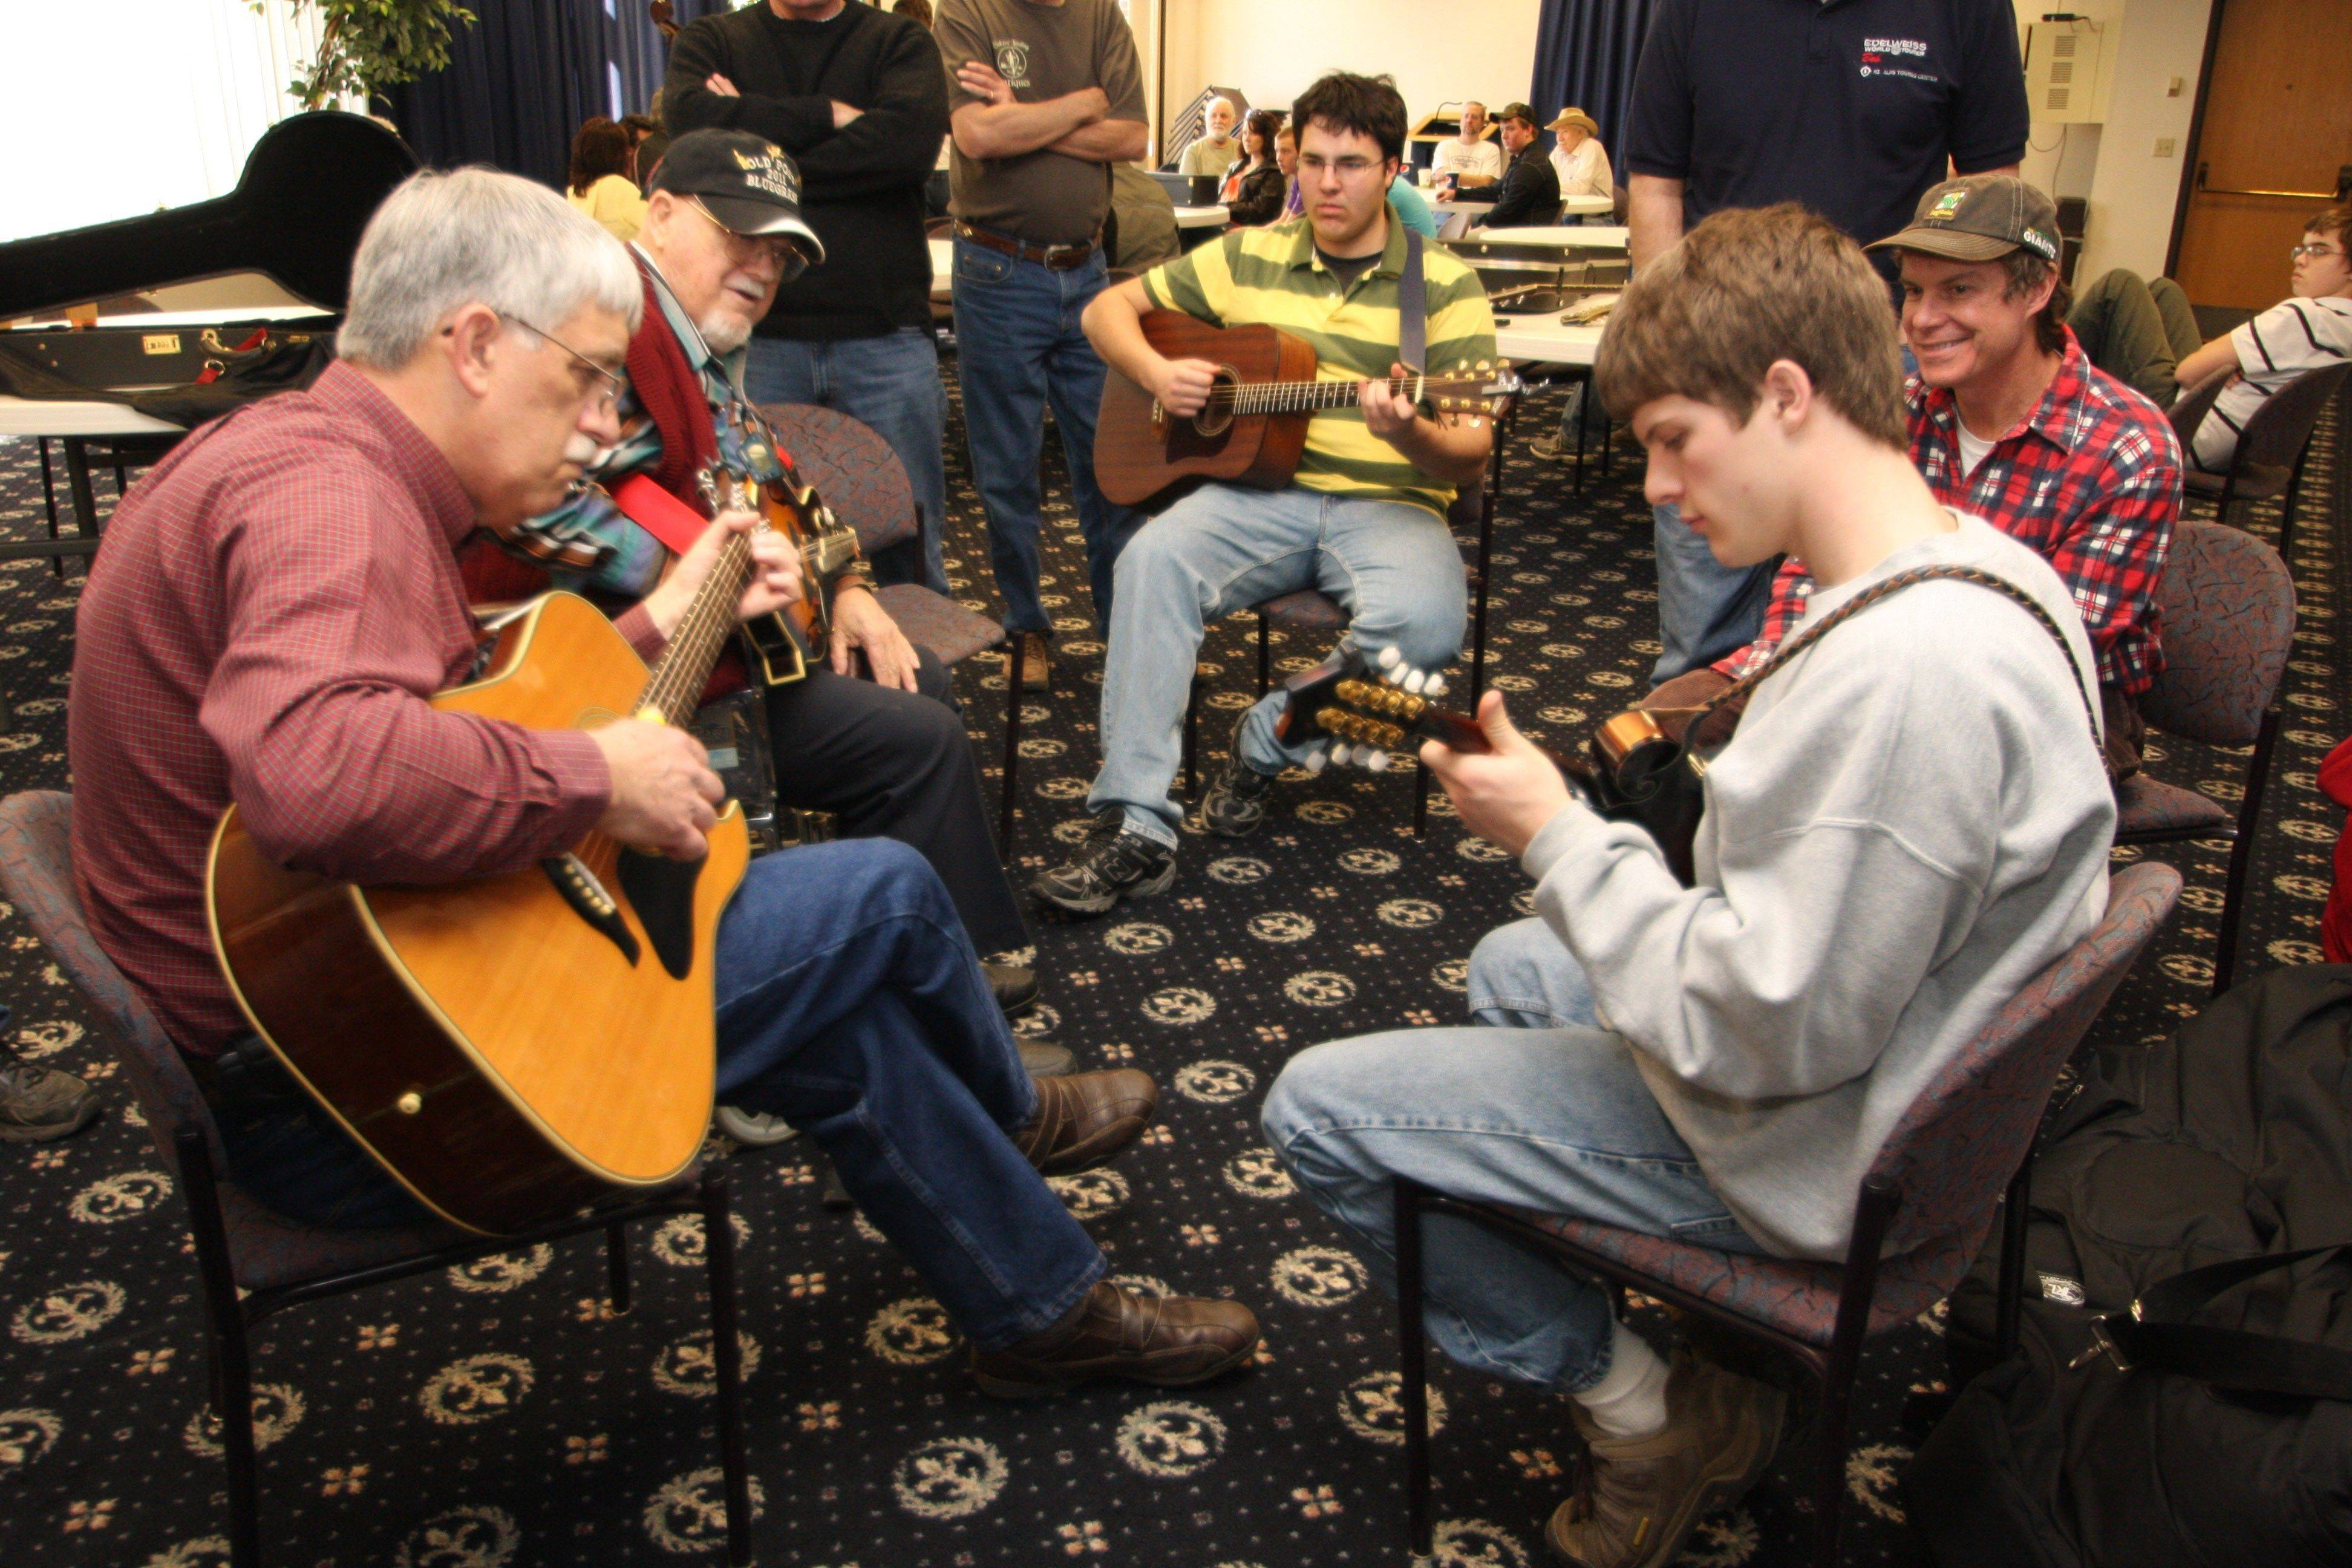 Musicians will be able to join in and play at the Old Post Bluegrass Jam in Vincennes, Ind., on Sunday, Feb. 12.